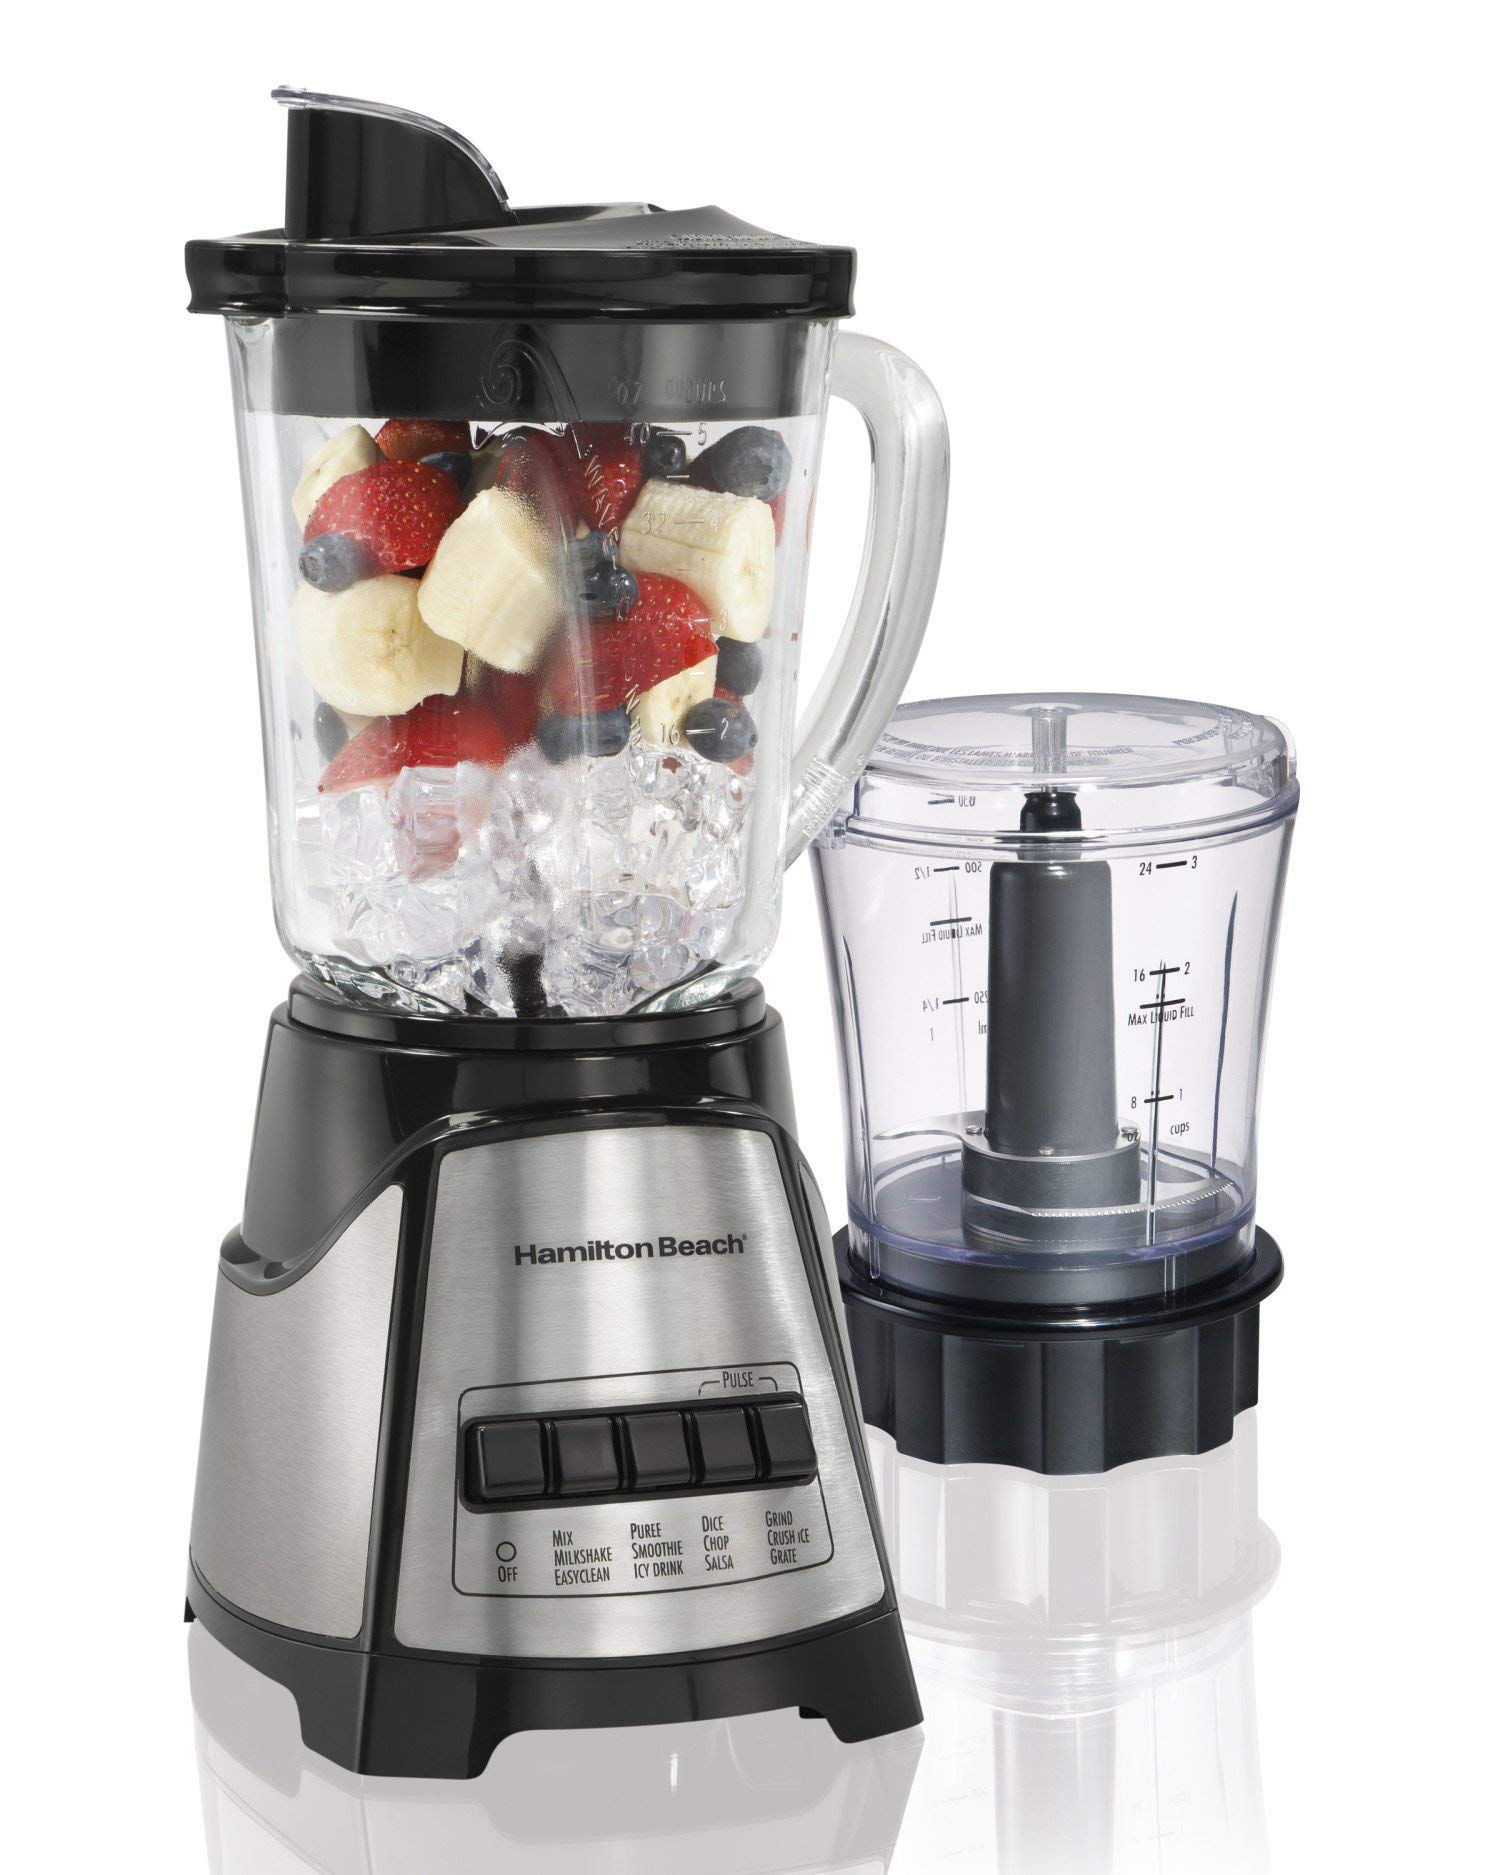 Hamilton Beach Power Elite Electric Blender with 12 Blending Functions, Dishwasher Safe Glass Jar, 40 Oz, Black and…